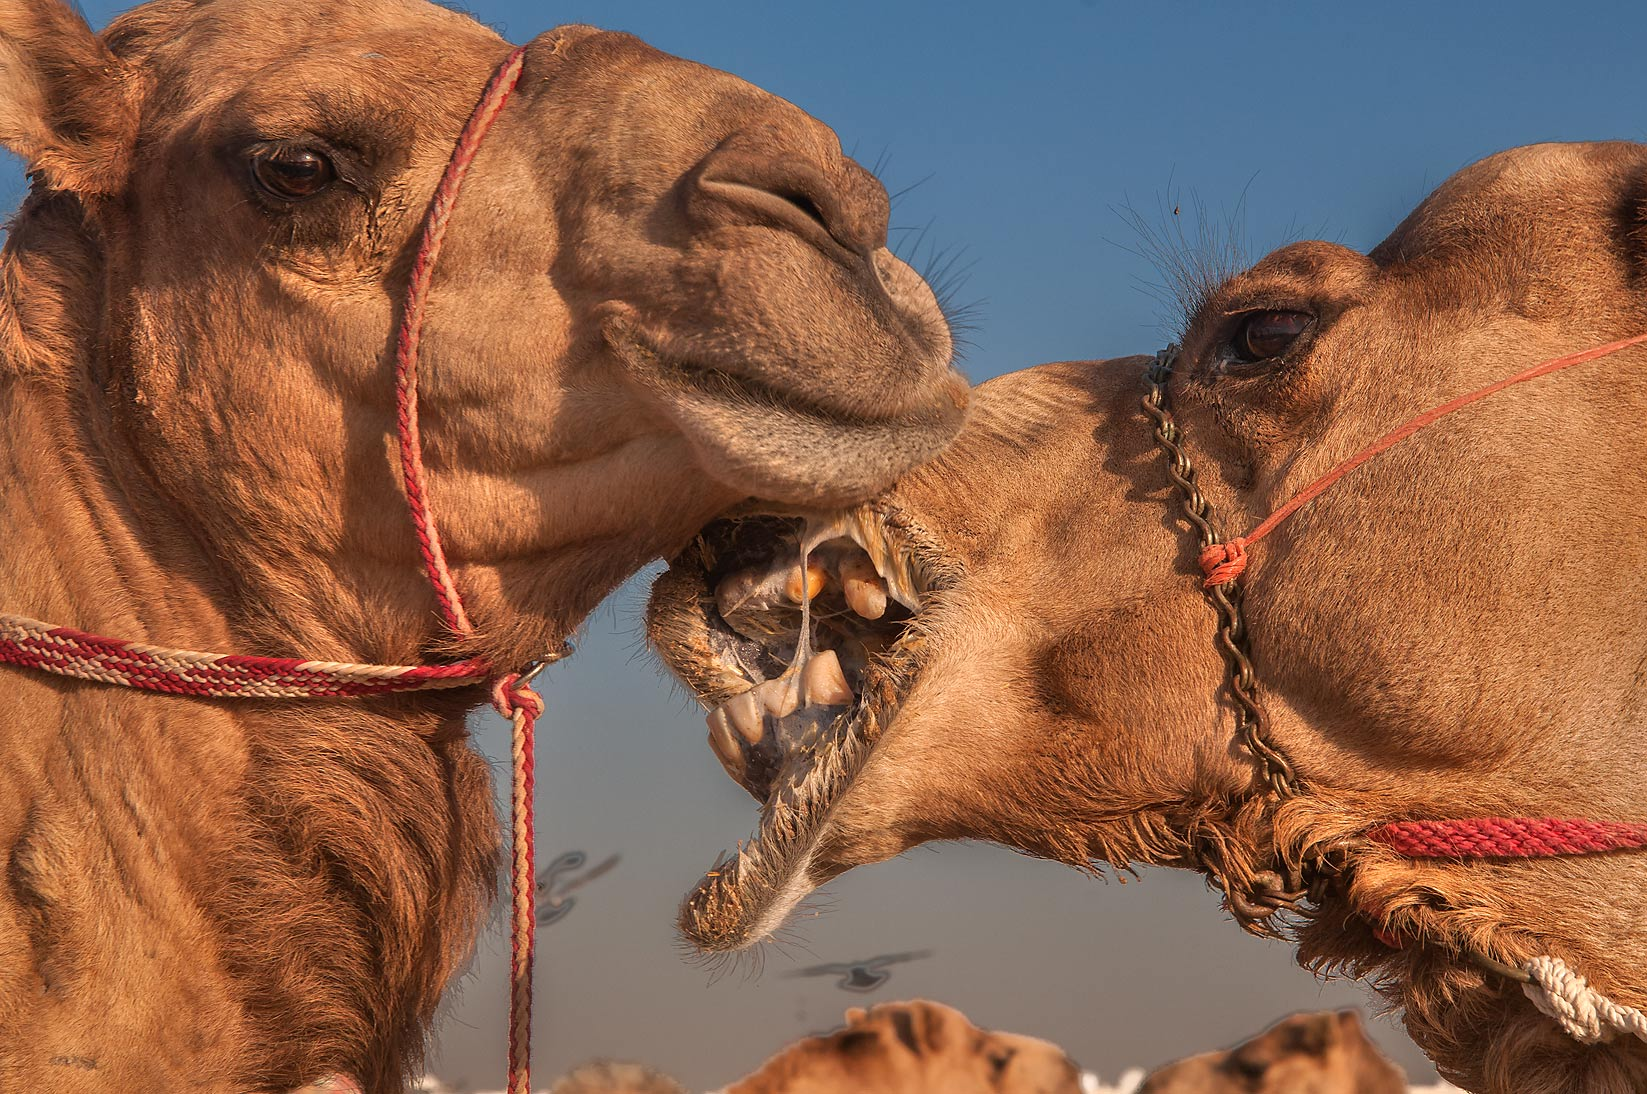 Two camel's heads in livestock market, Abu Hamour area. Doha, Qatar